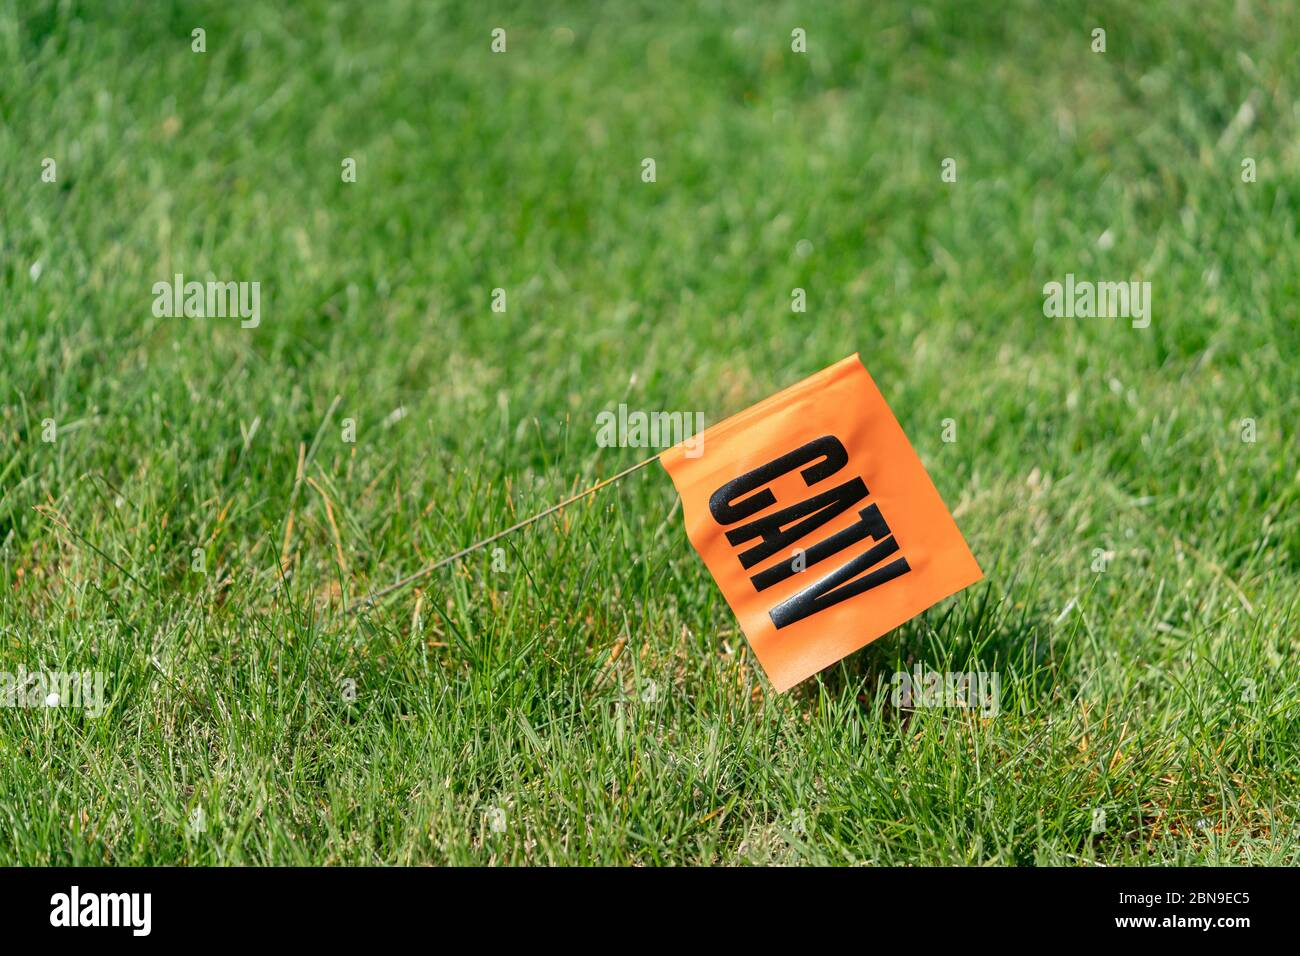 CATV in black letters on an orange flag stuck in a green grass lawn for call before you dig service Stock Photo